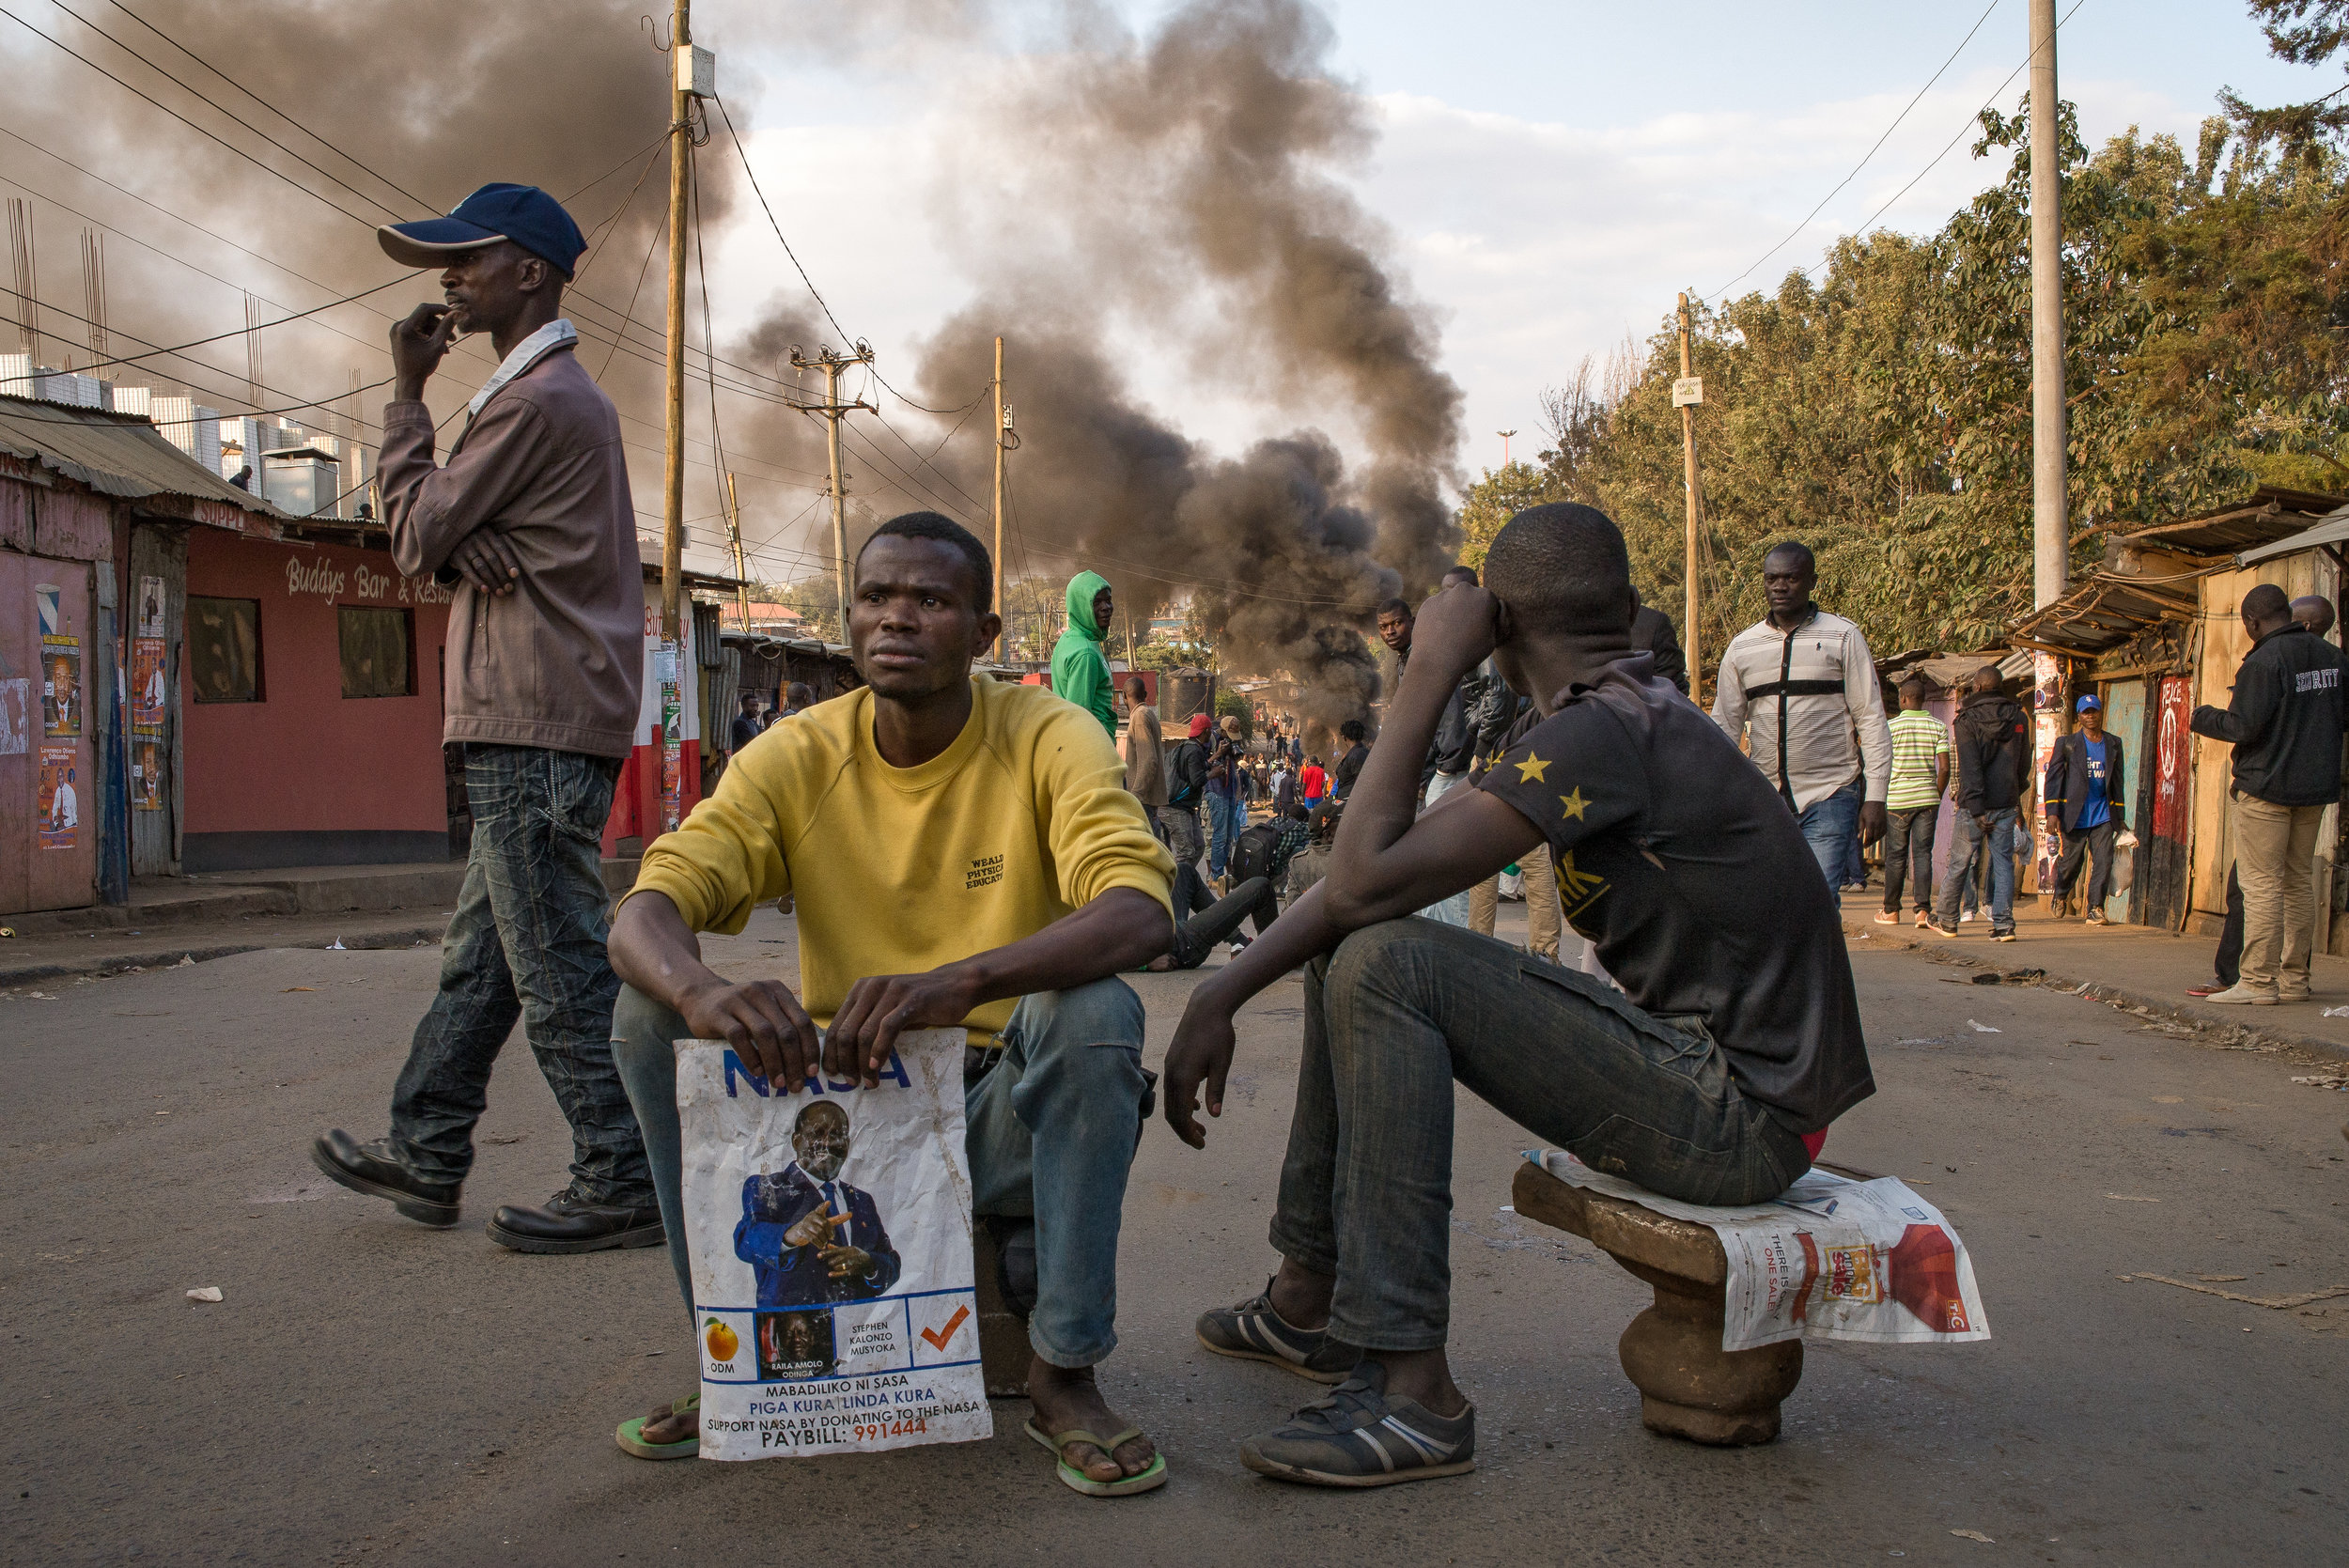 Men watch demonstrators light tires on fire in Nairobi's informal settlement of Kibera. The demonstration quickly turned violent as demonstrators armed themselves with stones and clubs bearing nails Wednesday evening. Credit:Katie G. Nelson/PRI